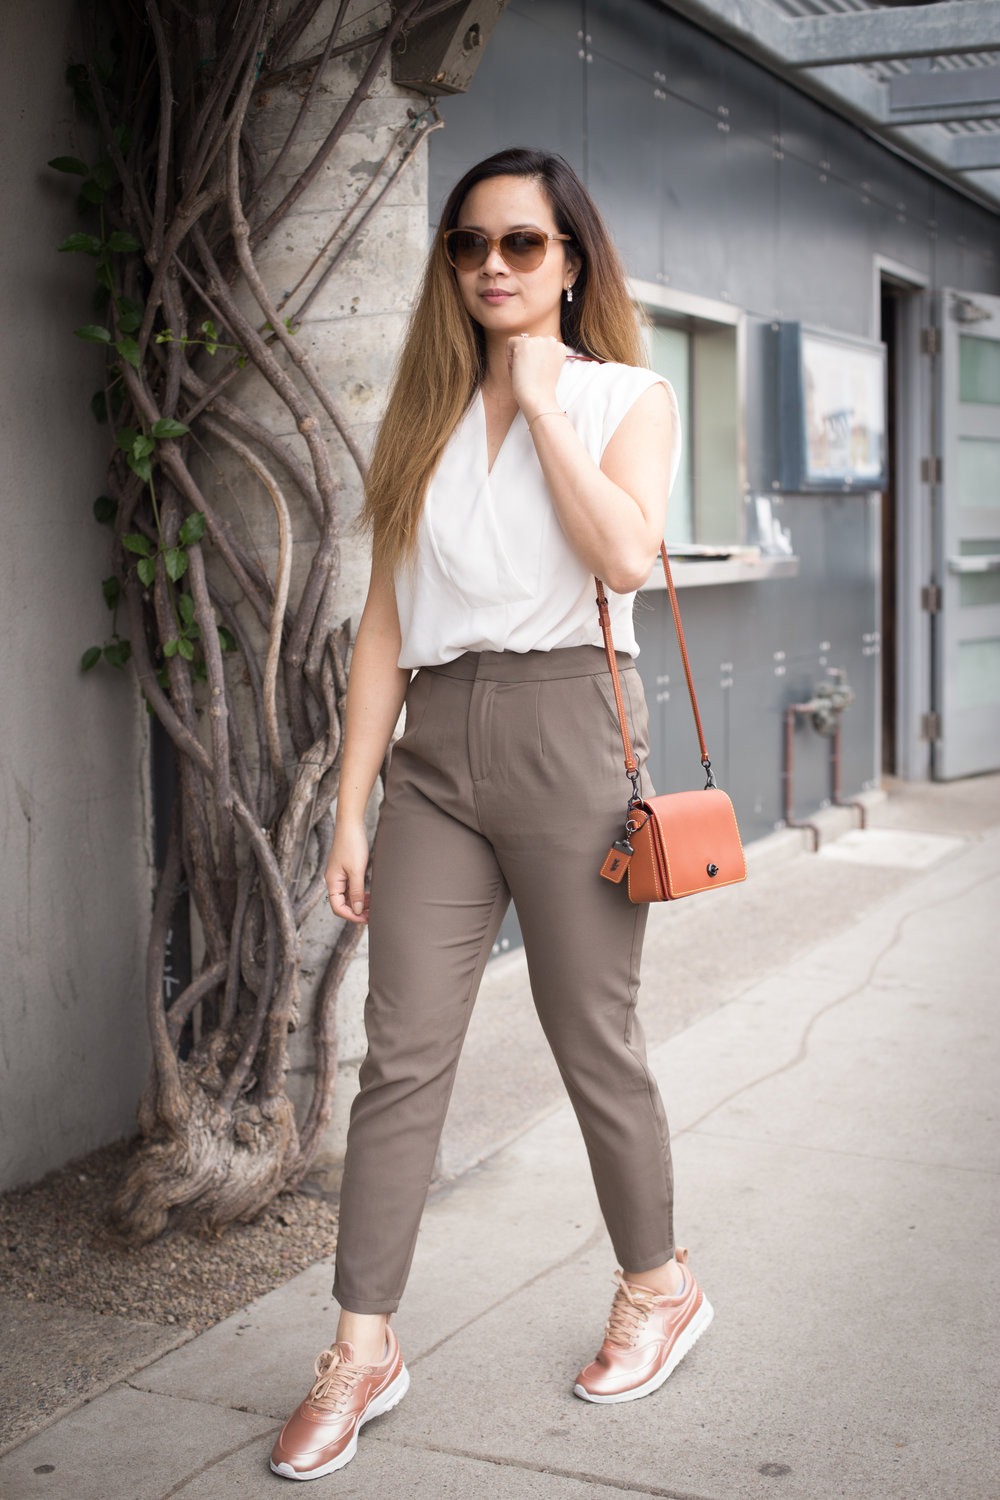 Top: similar @ Nordstrom Pants: Tobi Understand This Cigarette Pants Purse: C/O Coach Dinky Crossbody Bag Shoes: Nike Air Max Thea